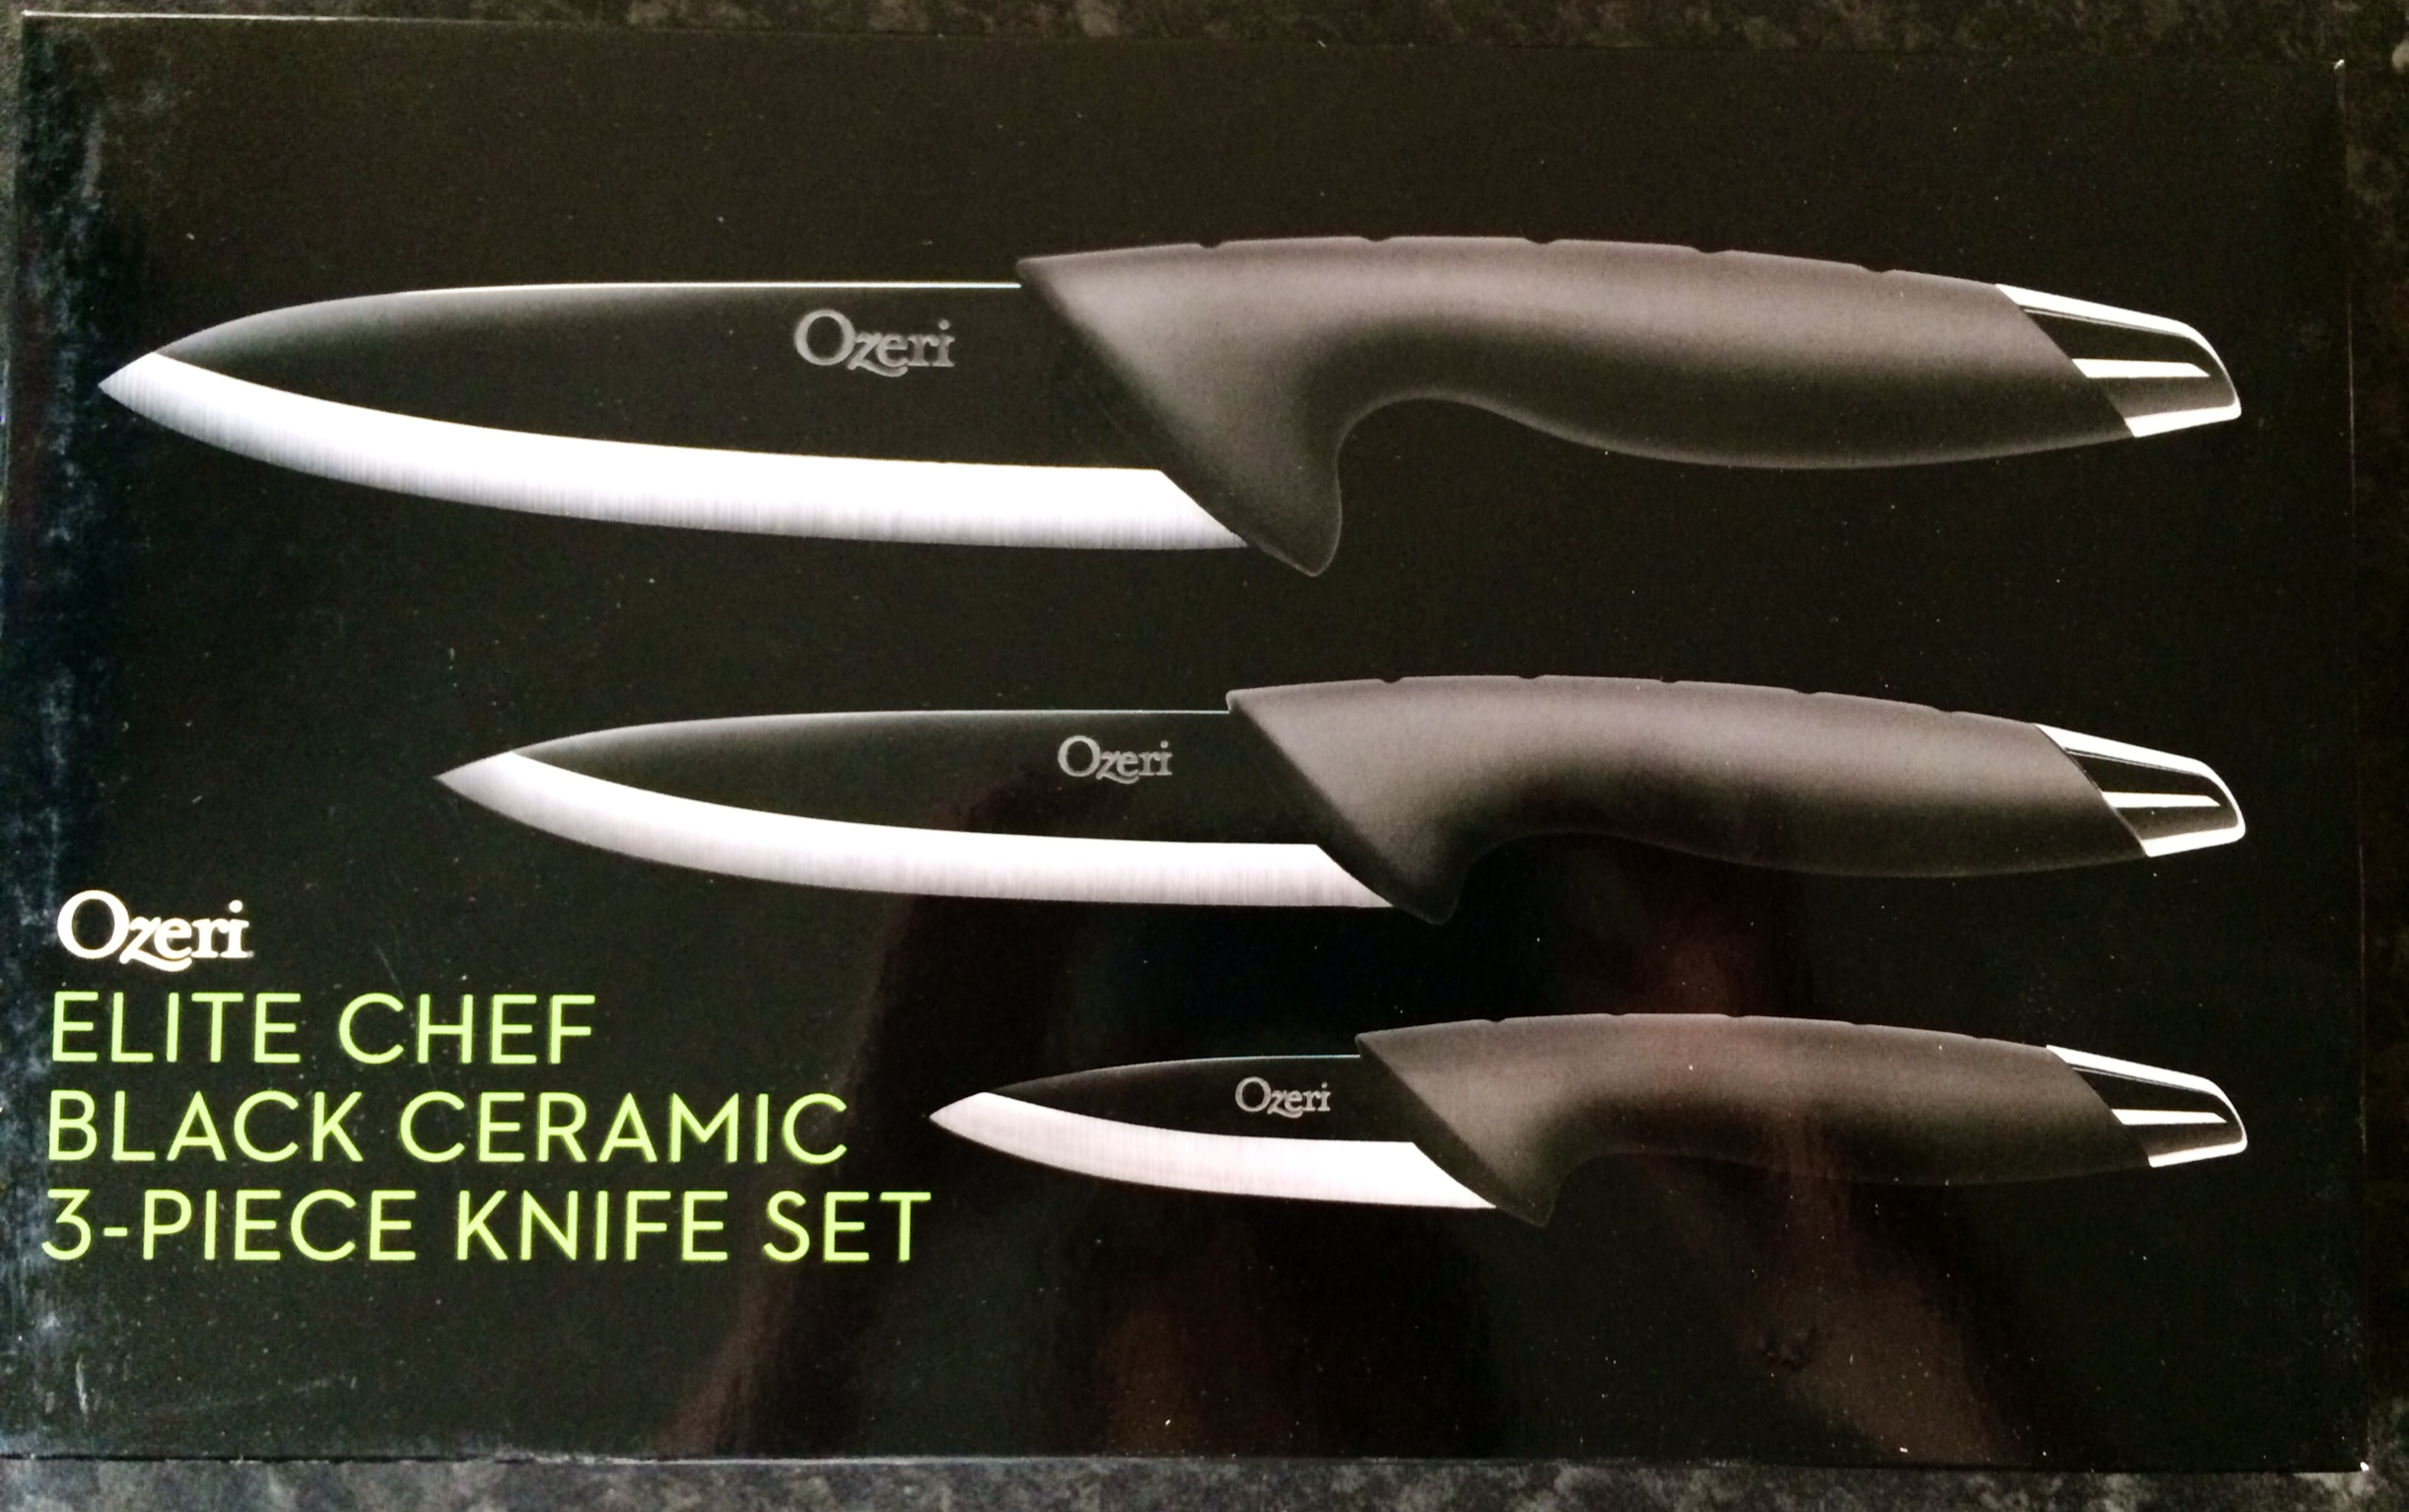 I Was Really Pleased To Have The Opportunity Review These Knives Am Always Keen Discover Good Quality Long Lasting Products For Kitchen And